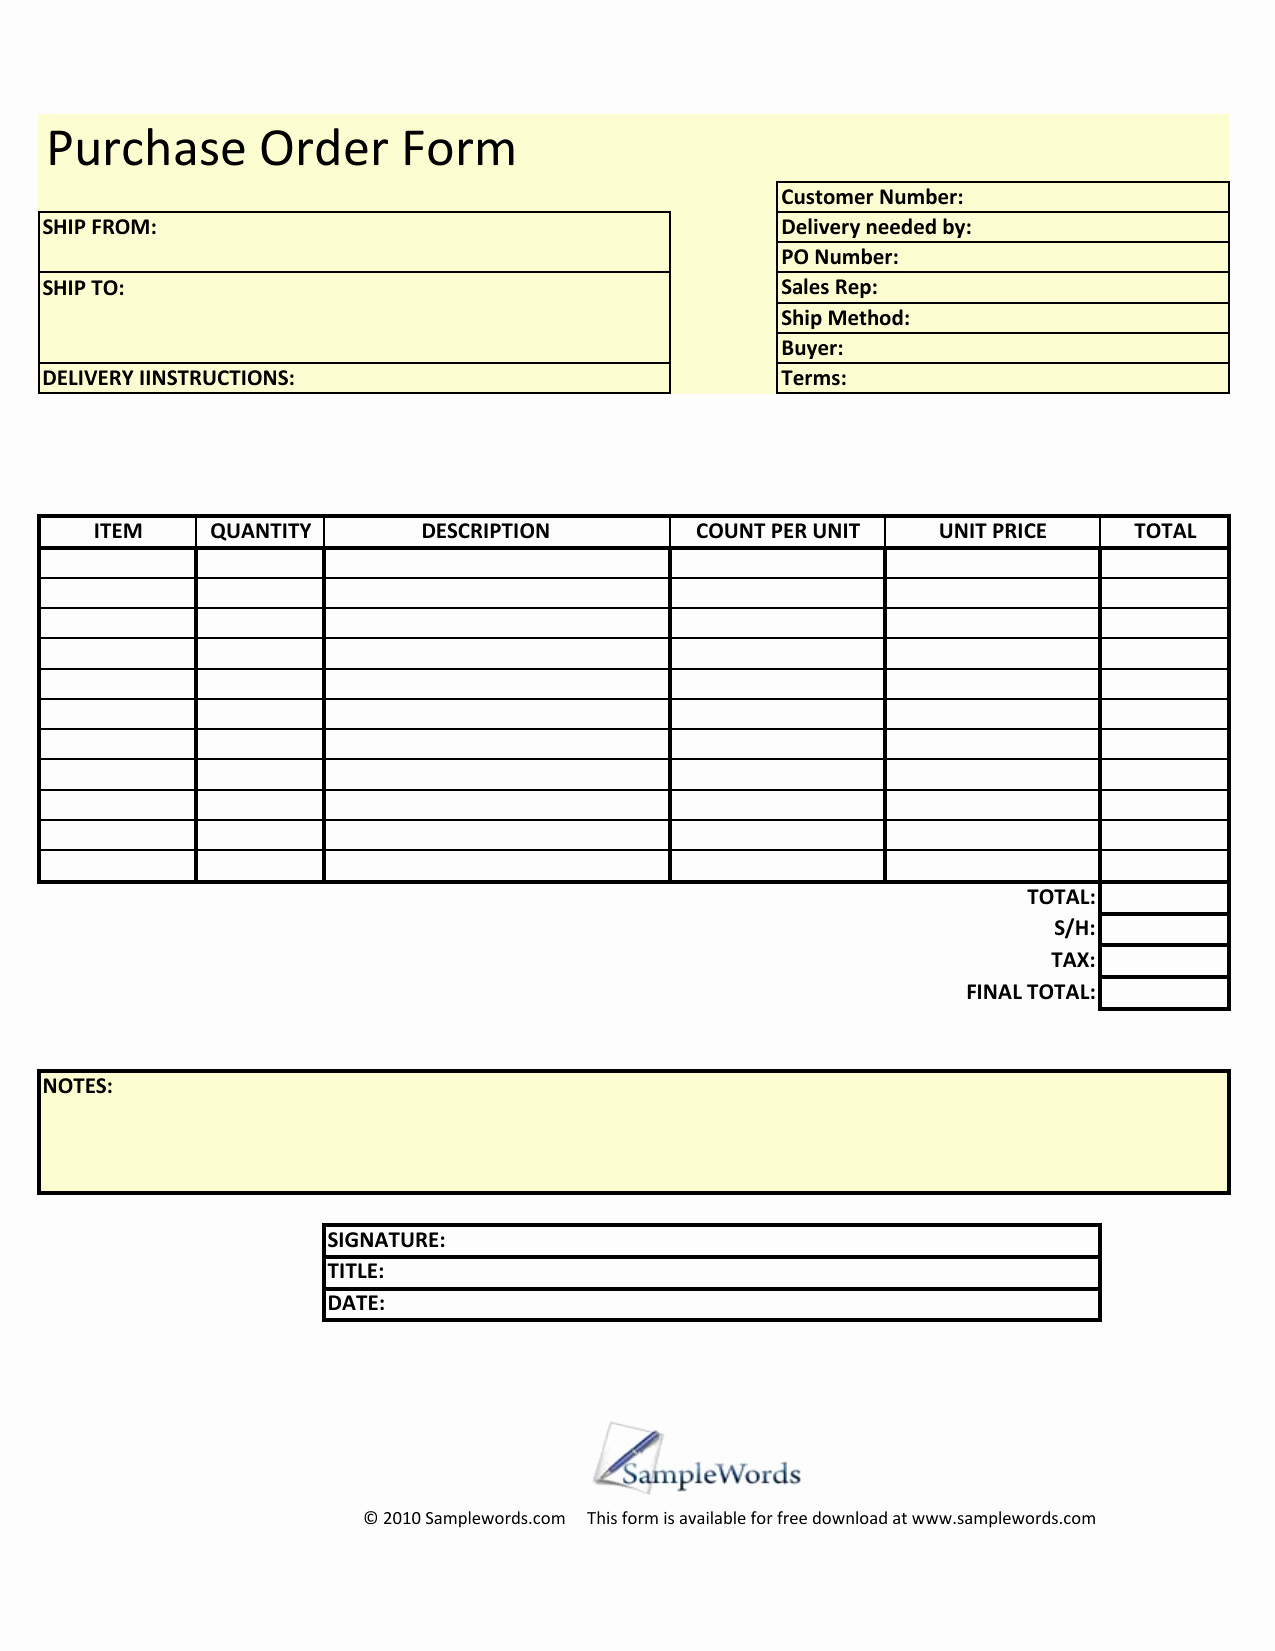 Ordering form Template Excel Best Of Download Blank Purchase order form Template Excel